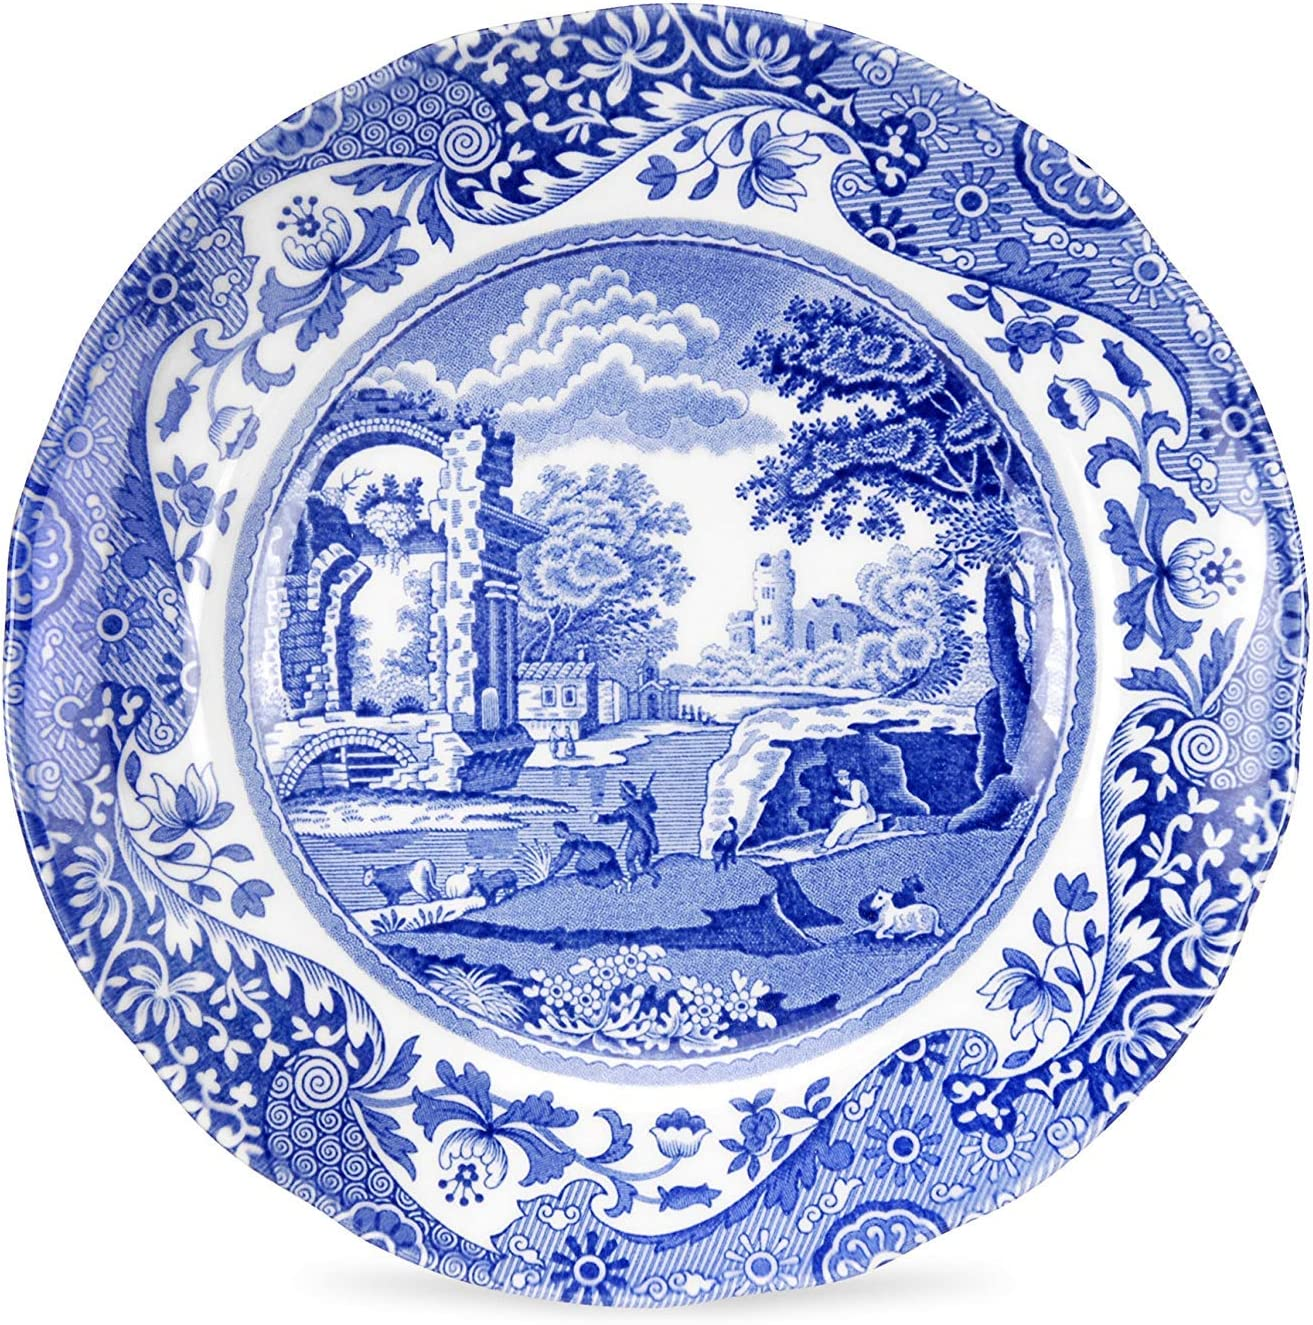 Vintage Spode Seasons  10 38 Dinner Plate The Spode Blue Room Collection